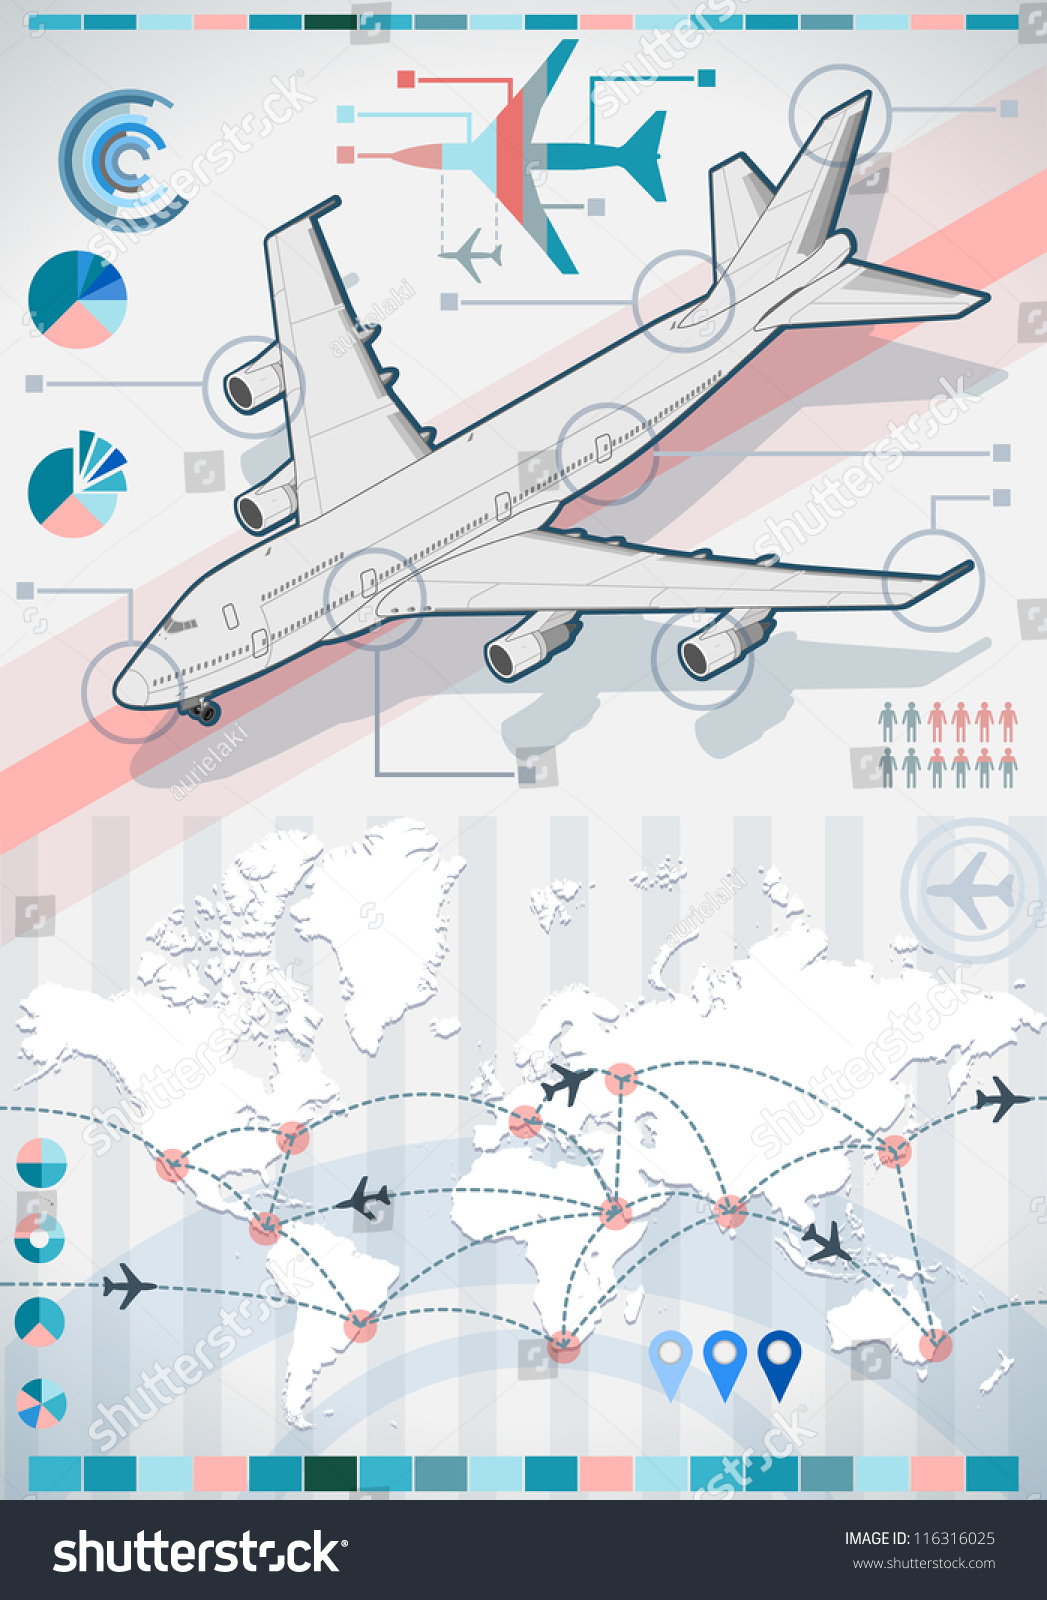 Isometric Airplane Infographic 3d Diagram Aviation Stock ... on